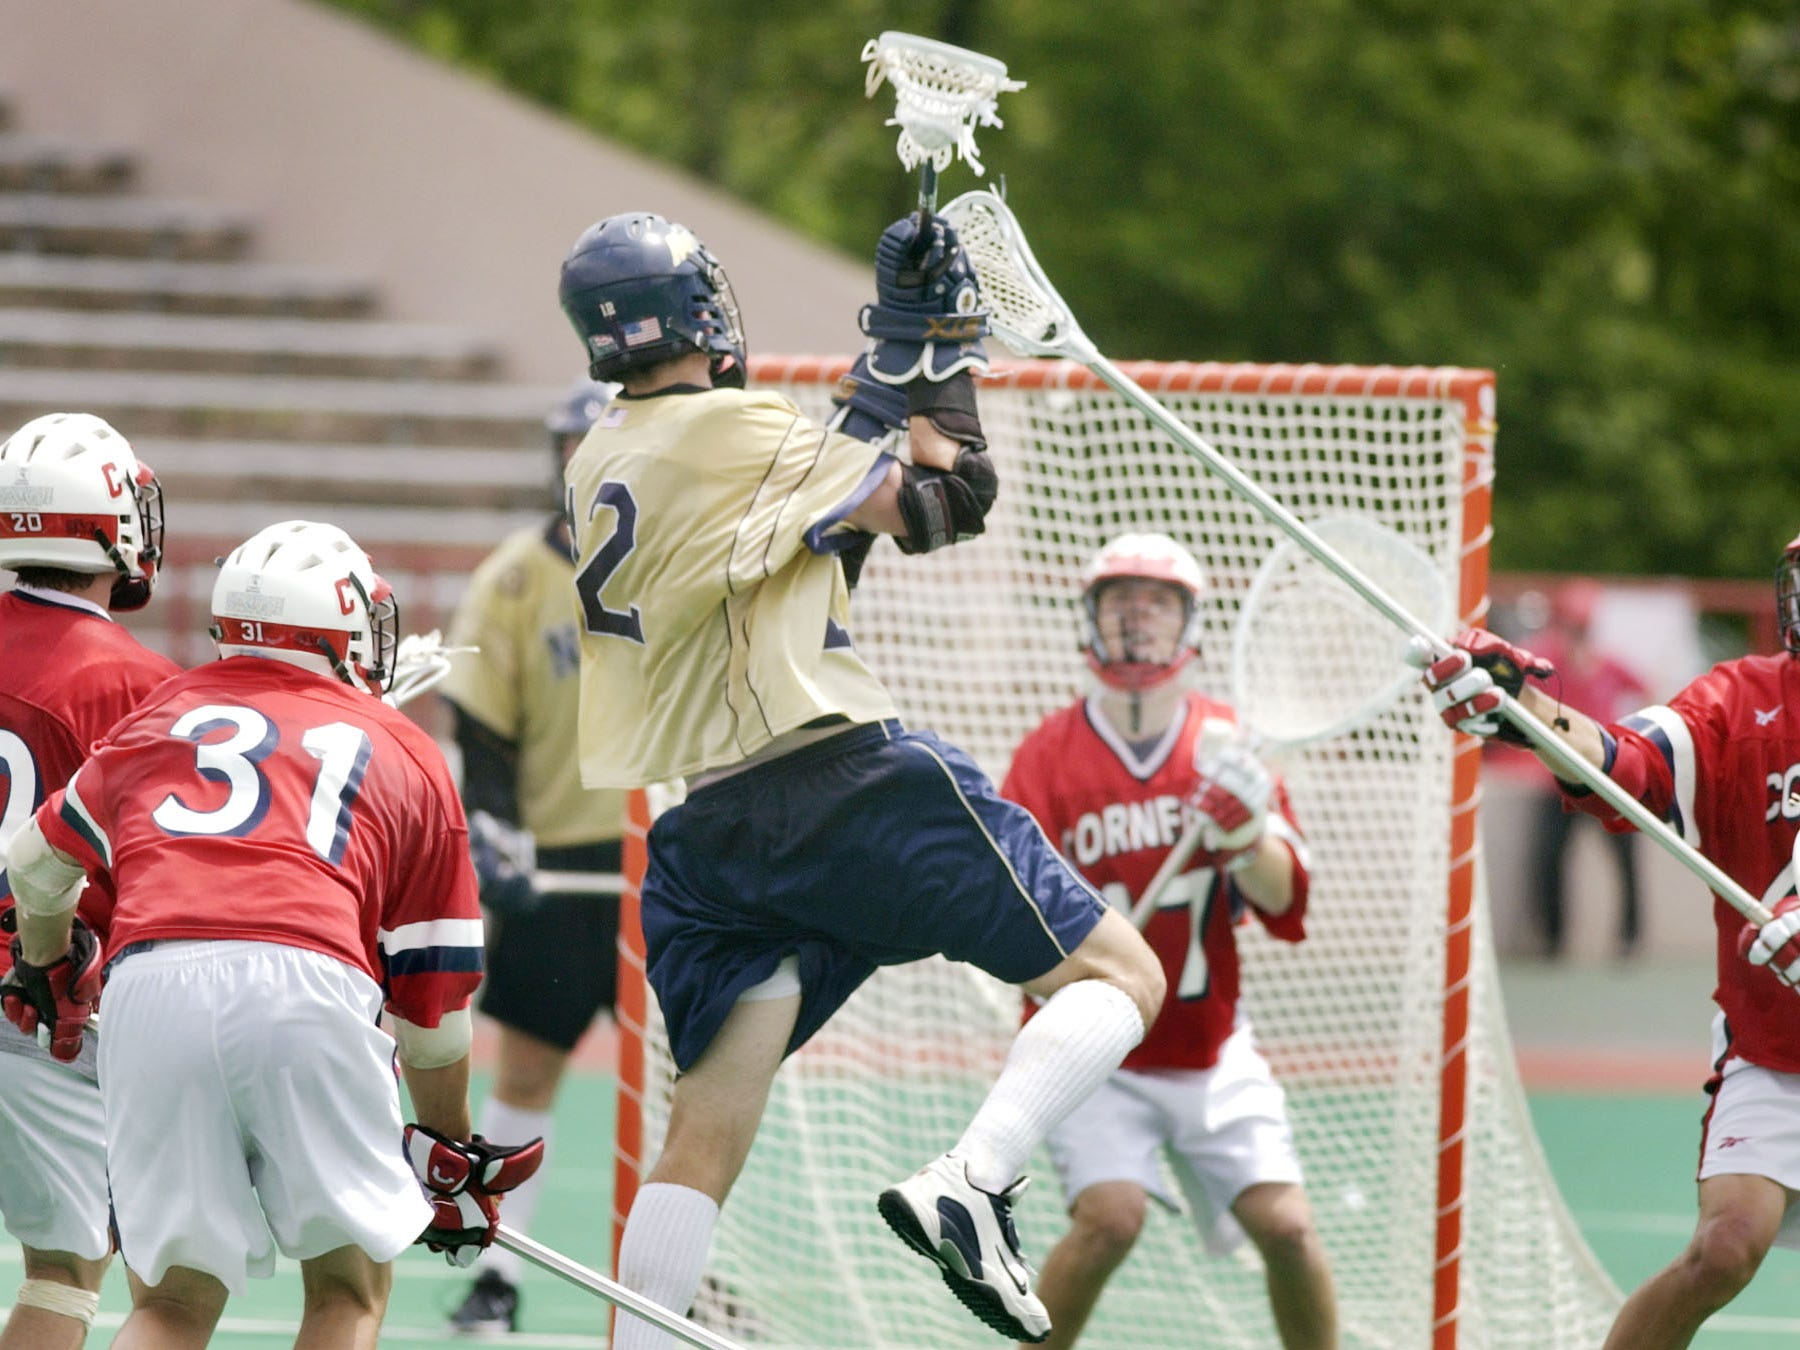 Navy's Graham Gill, center, shoots on Cornell goalie Matt McMonagle during the fourth quarter of an NCAA Division I lacrosse quarterfinal game in Ithaca, N.Y., Sunday, May 23, 2004. Navy won 6-5.